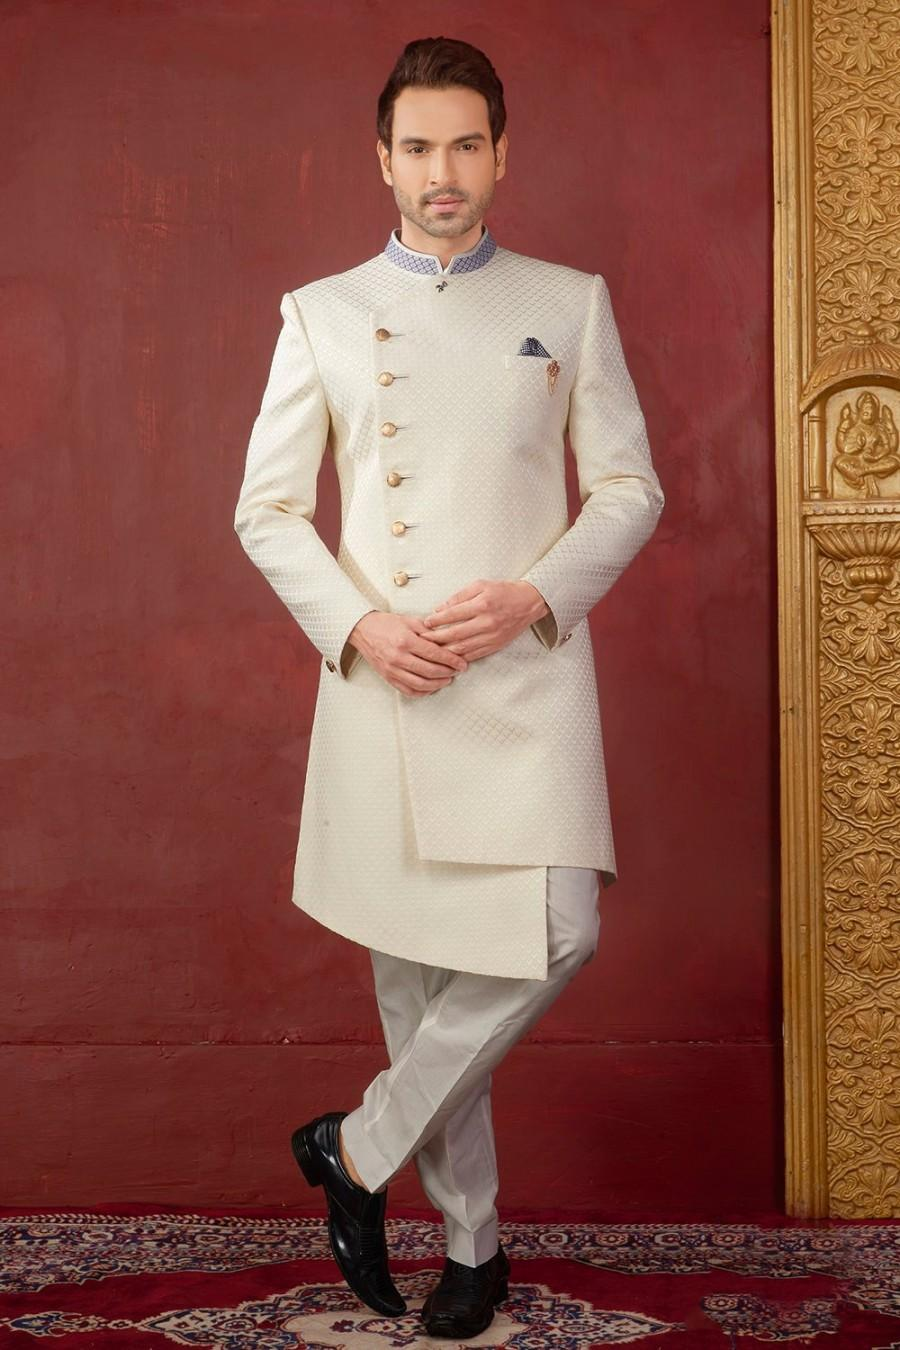 Hochzeit - Exclusive Royal Wedding Groom Sherwani Party wear Indo Western Ceremony Religious Elegant Outfit